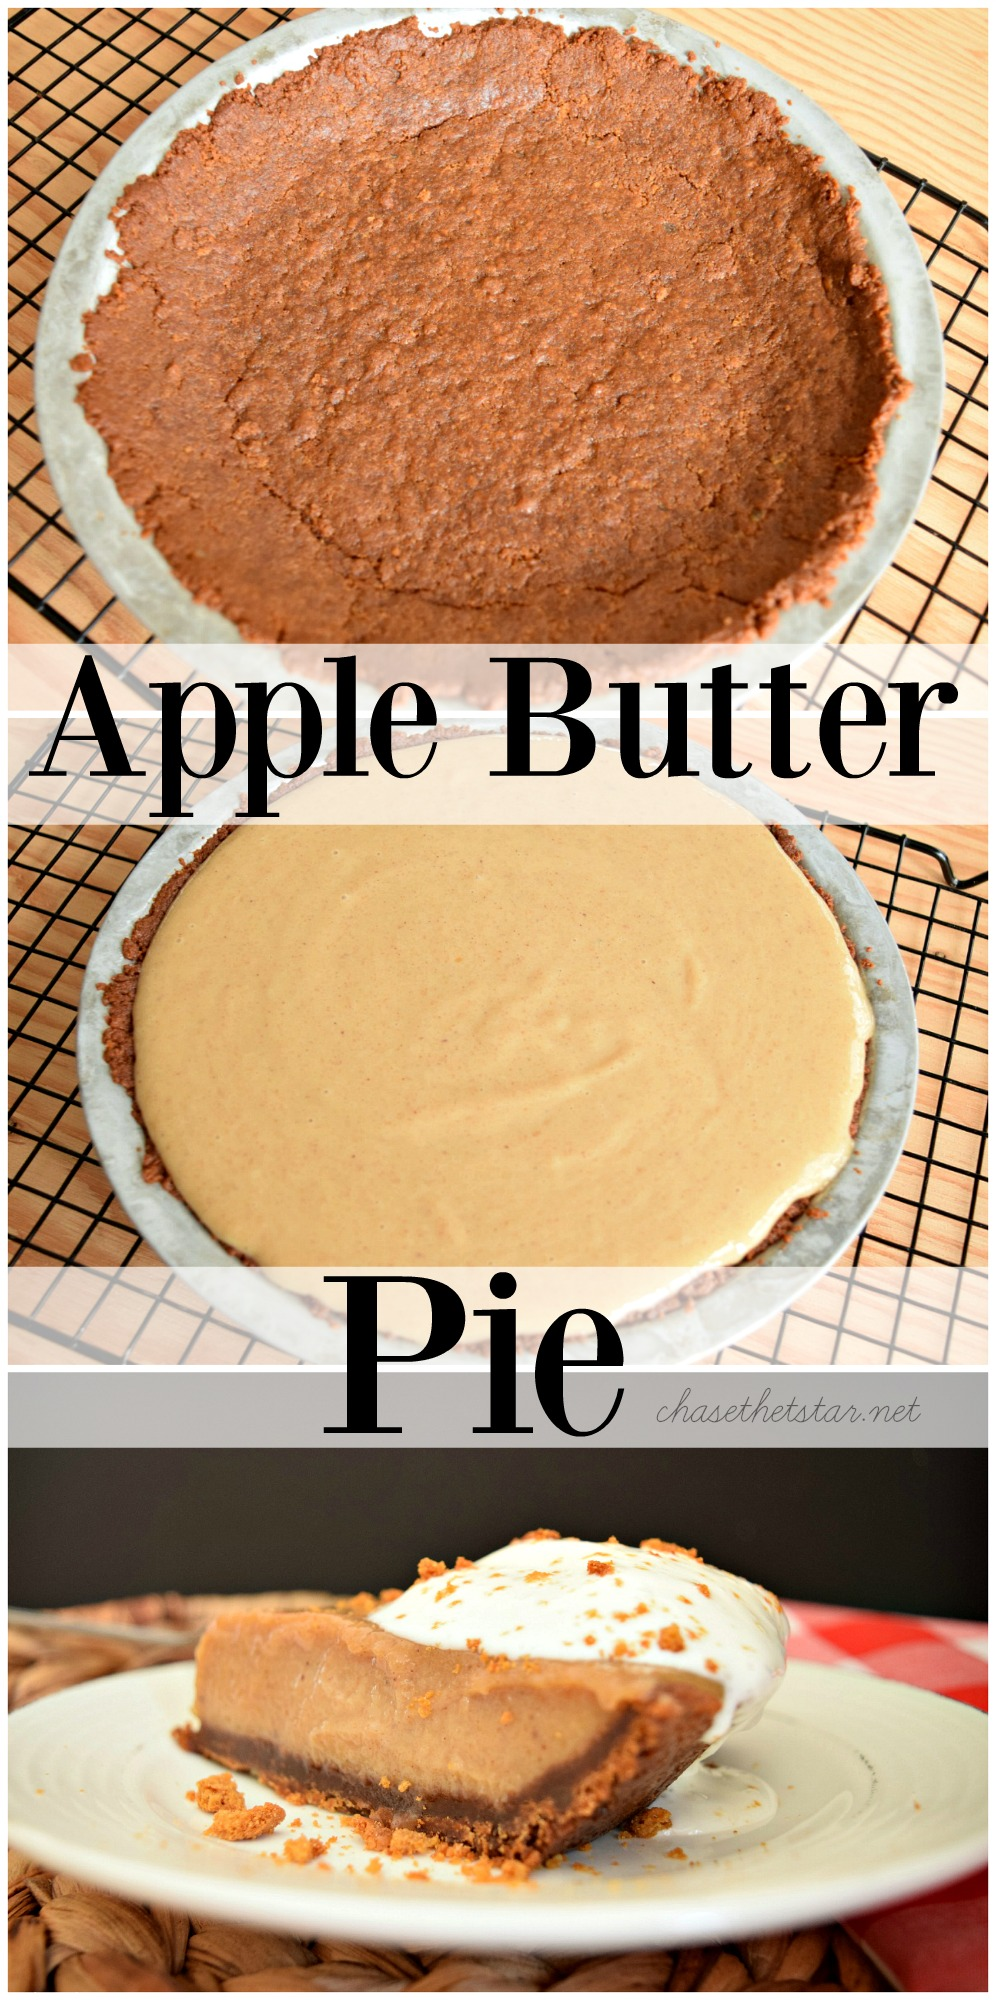 Everyone loves apple pie, this fall make an Apple Butter Pie! This is an easy recipe and the perfect fall dessert! #WayfairPieBakeOff